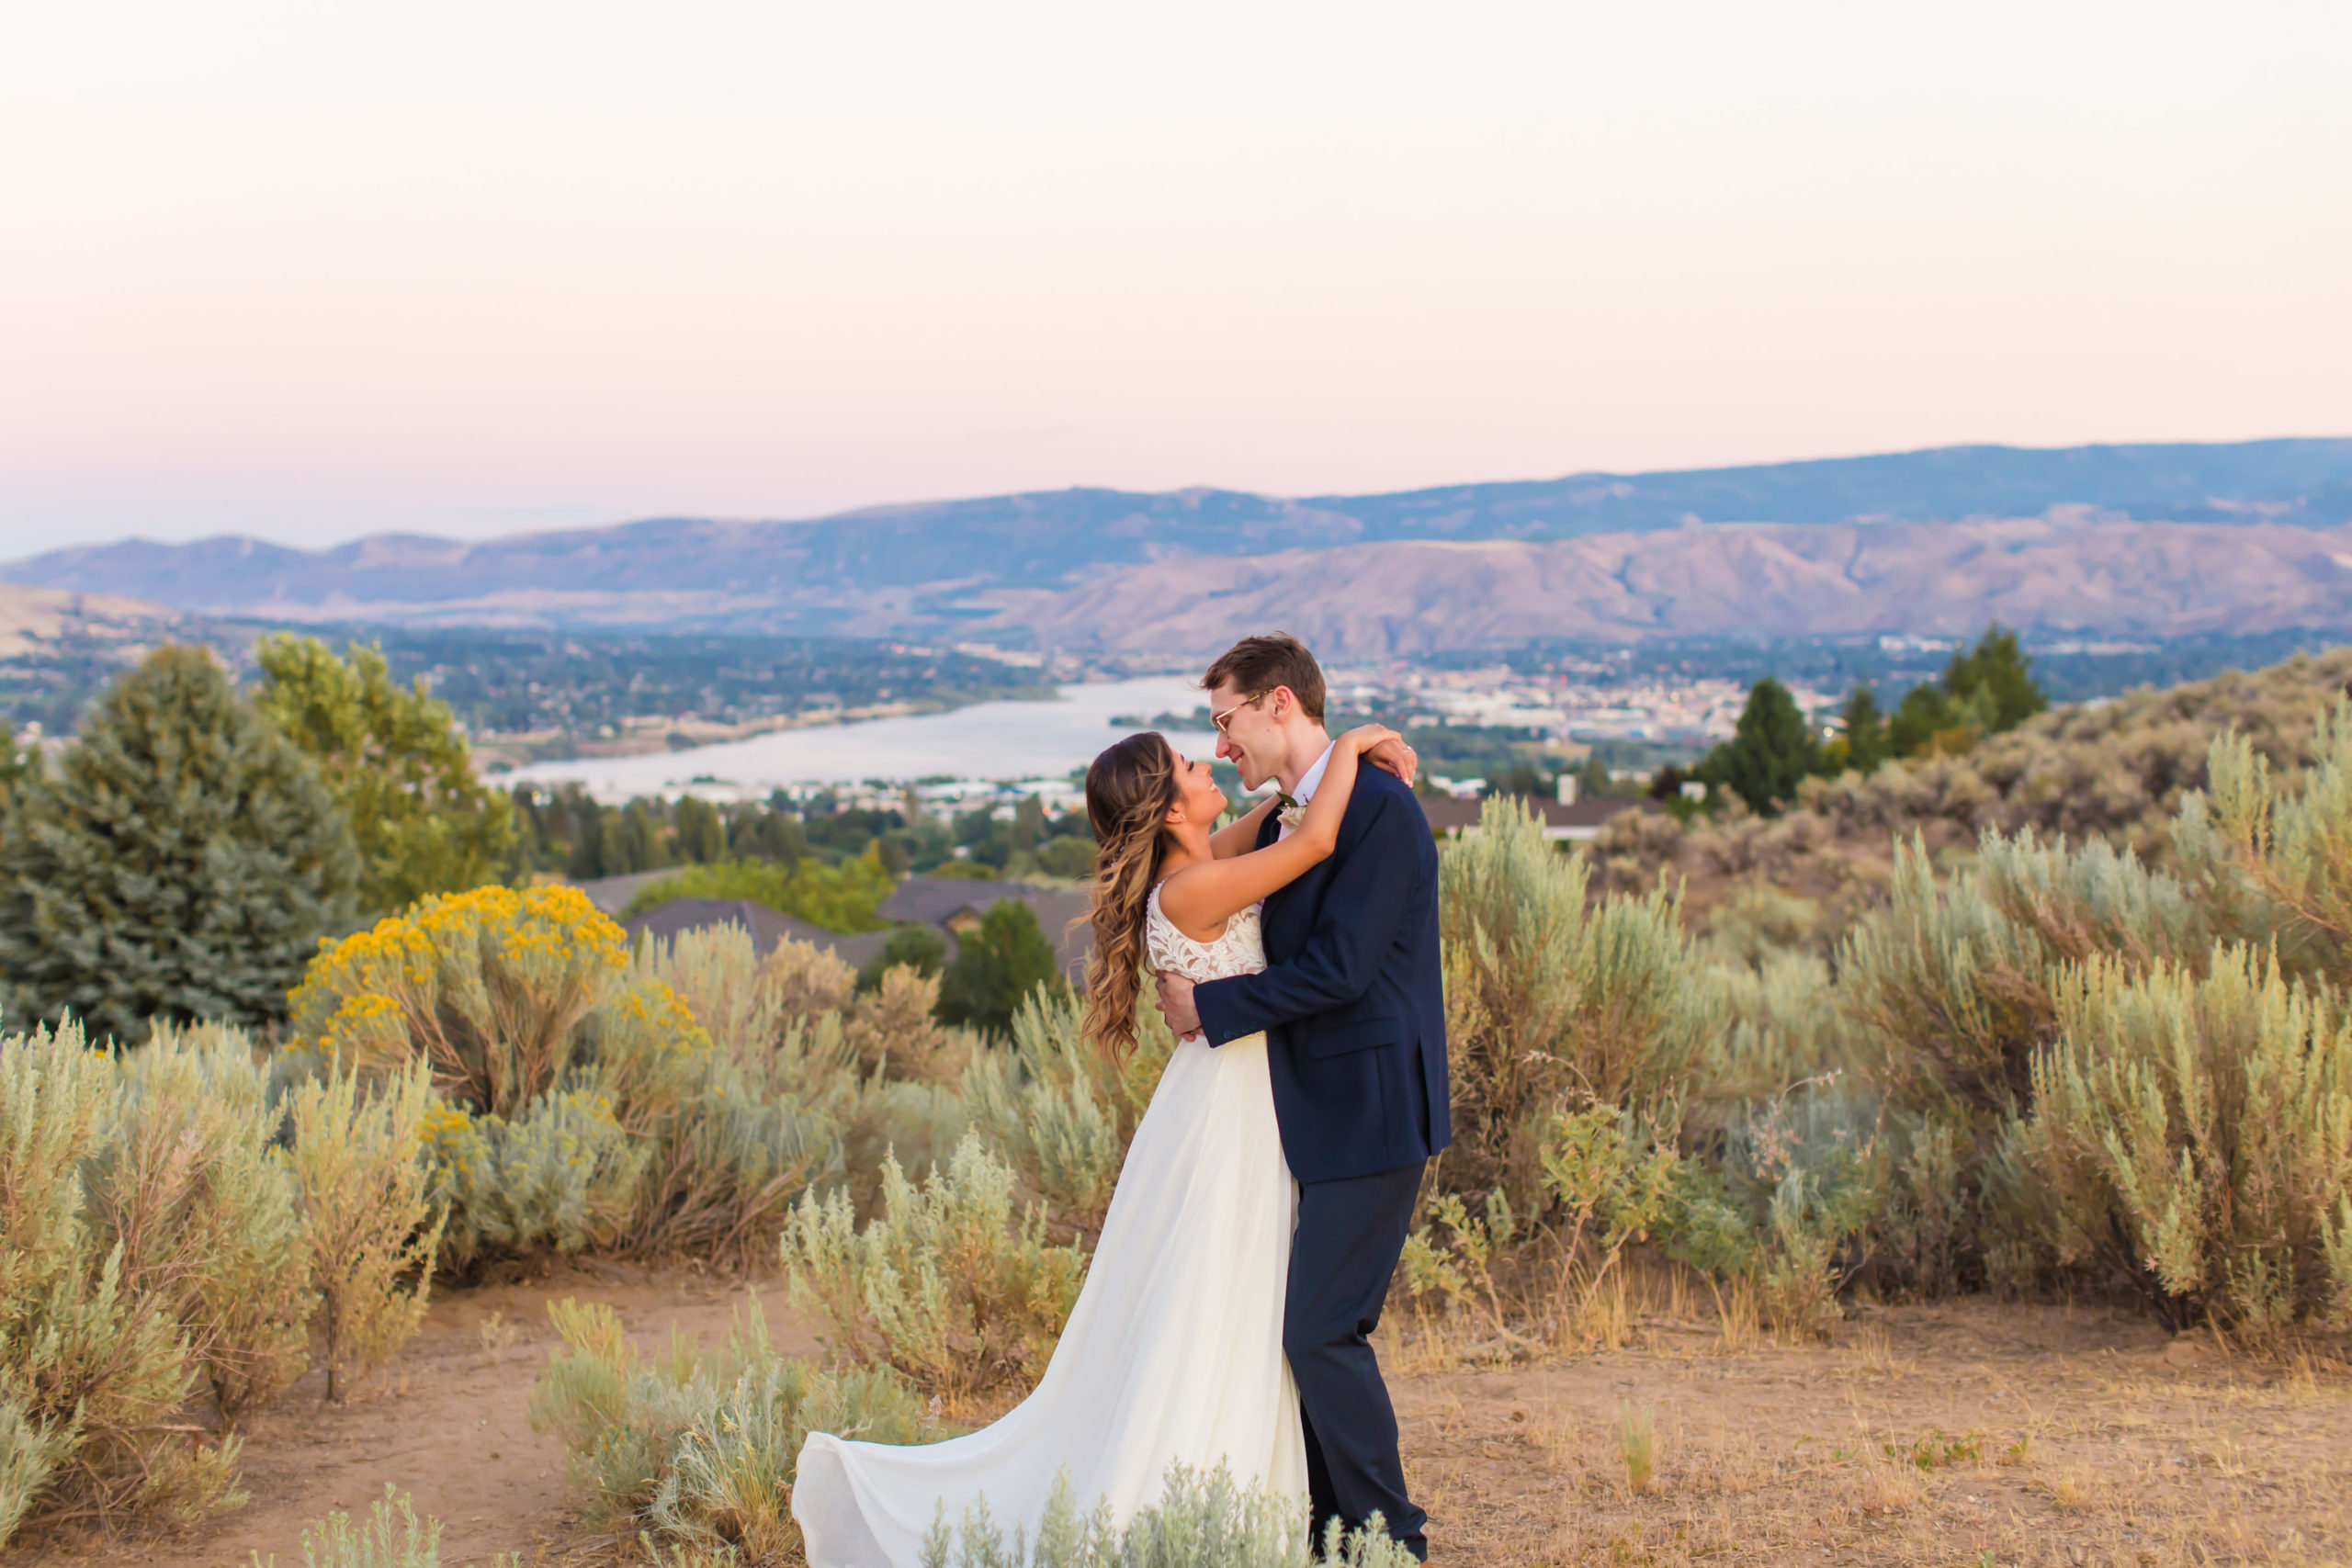 Bride and Groom with scenic mountain backdrop